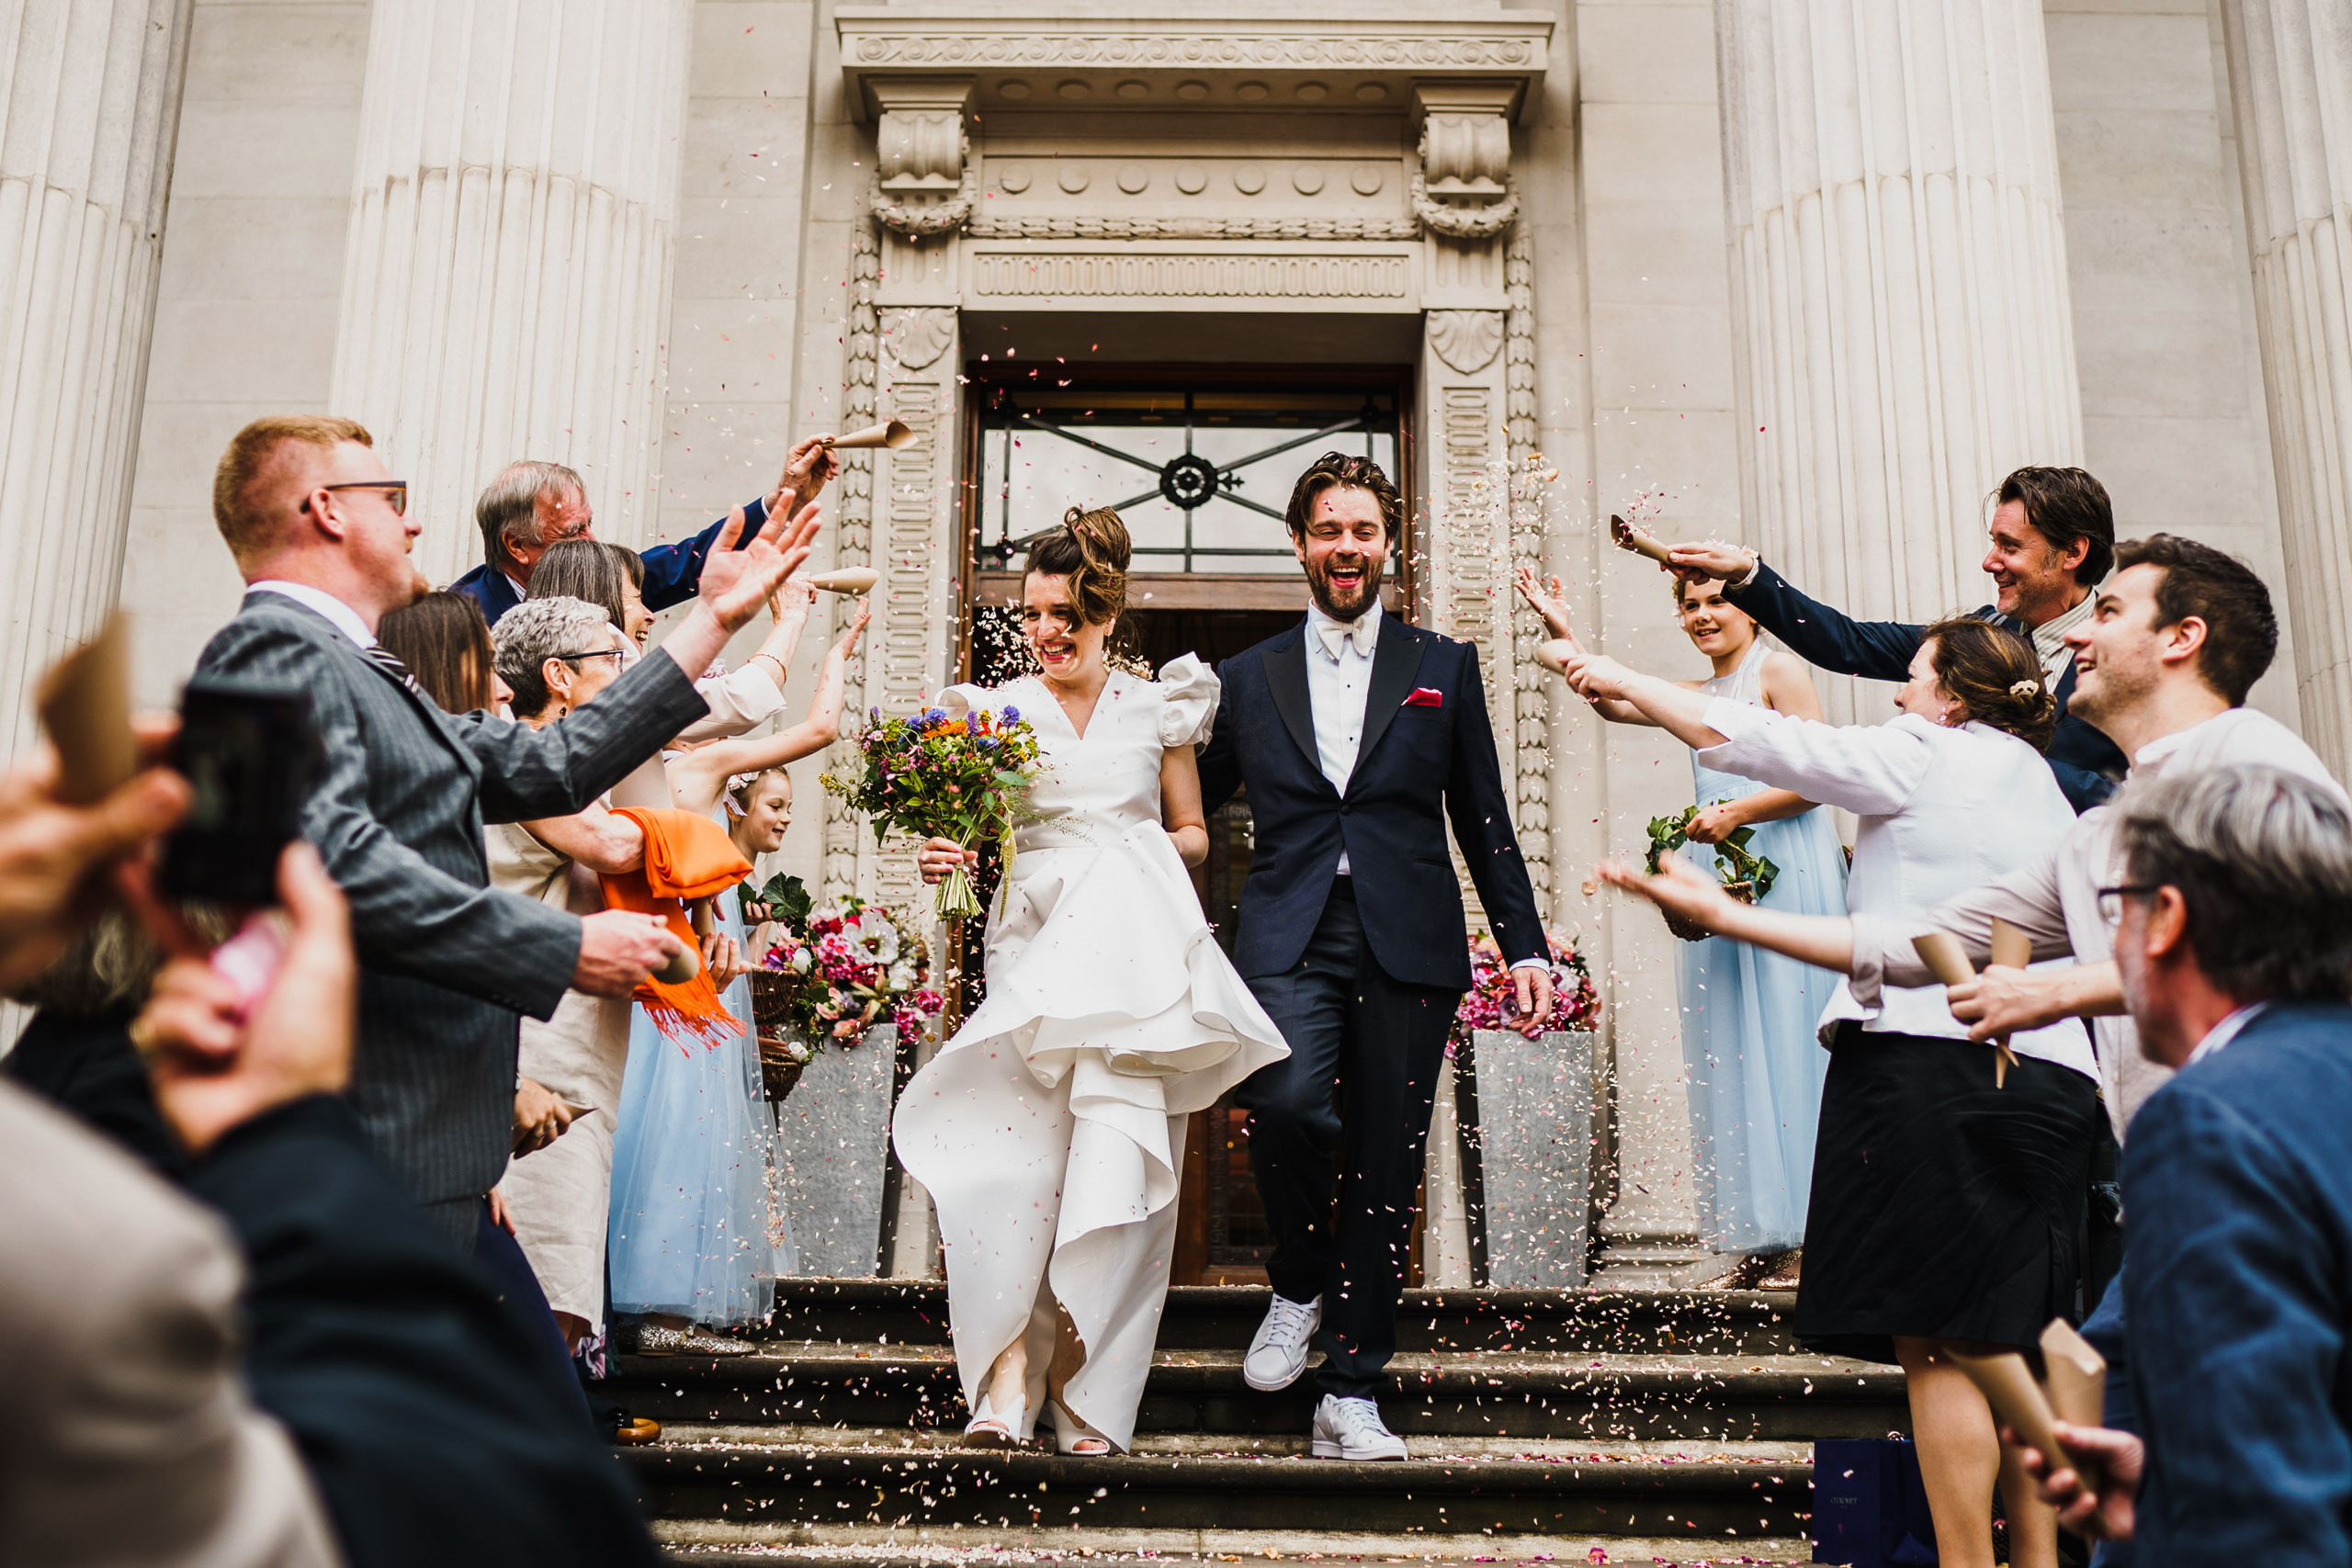 A newly married are showered with confetti at Old Marylebone Town Hall